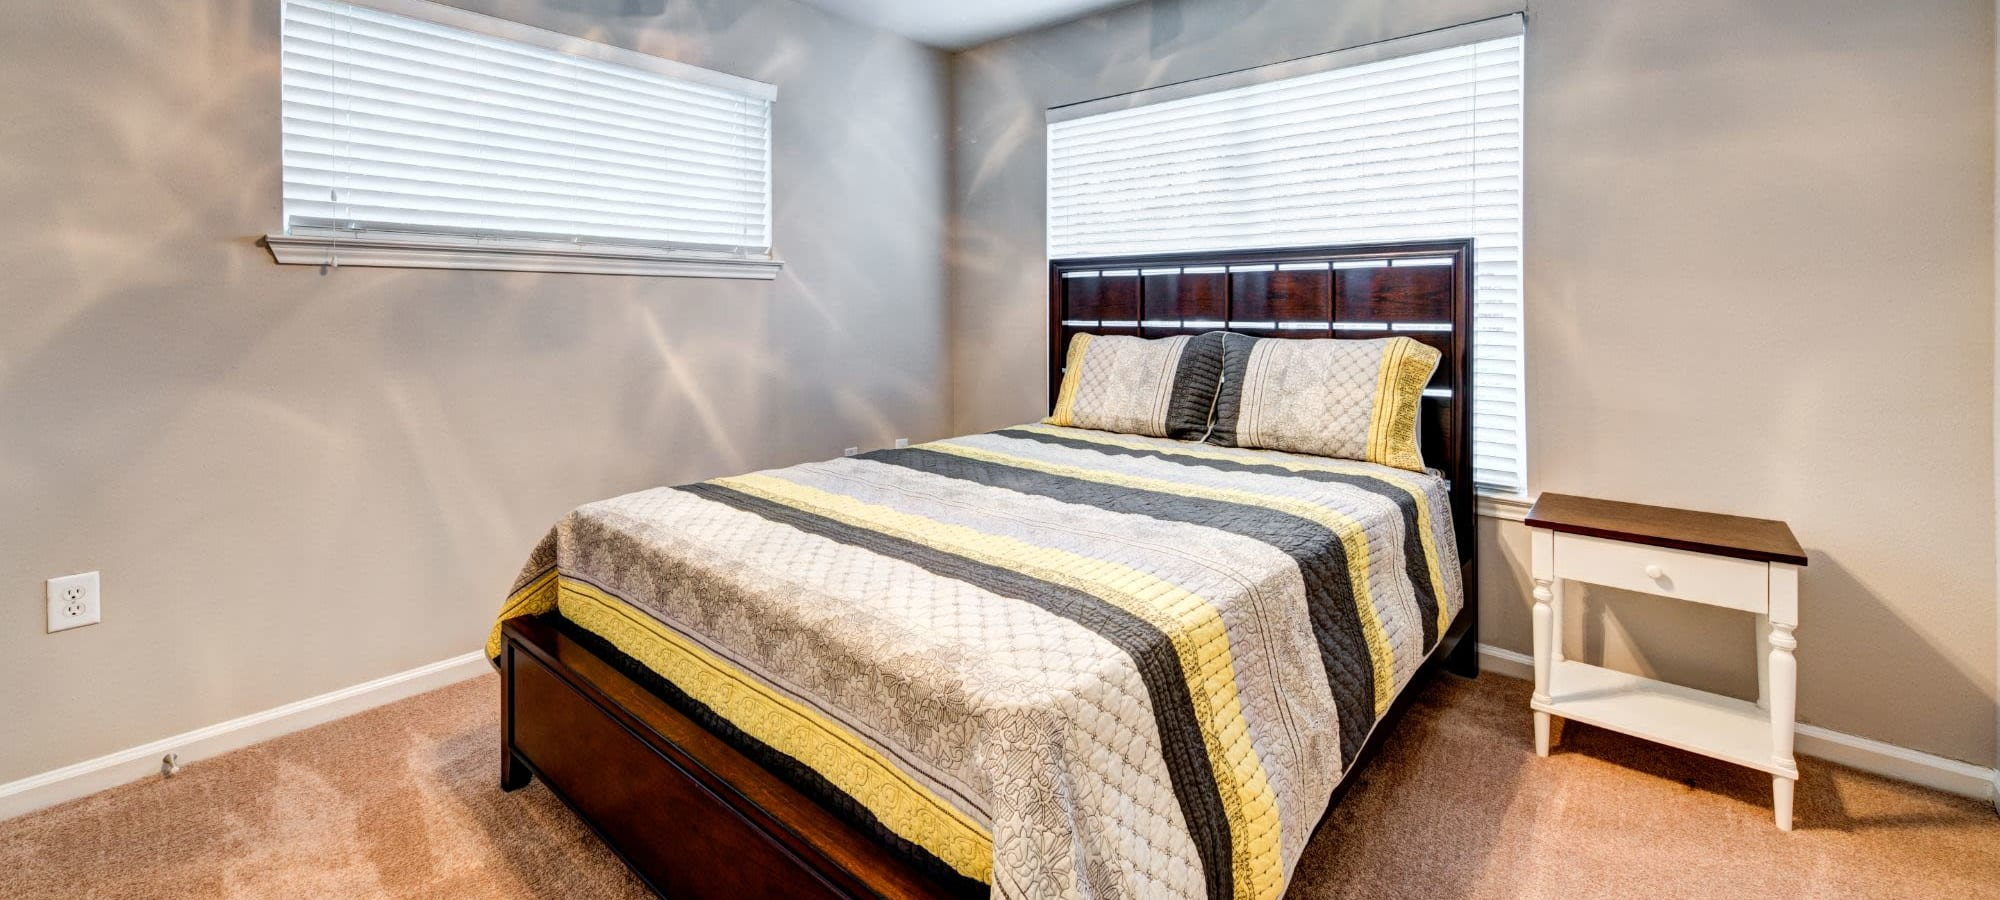 Apply to live at Marquis on Cary Parkway in Morrisville, North Carolina